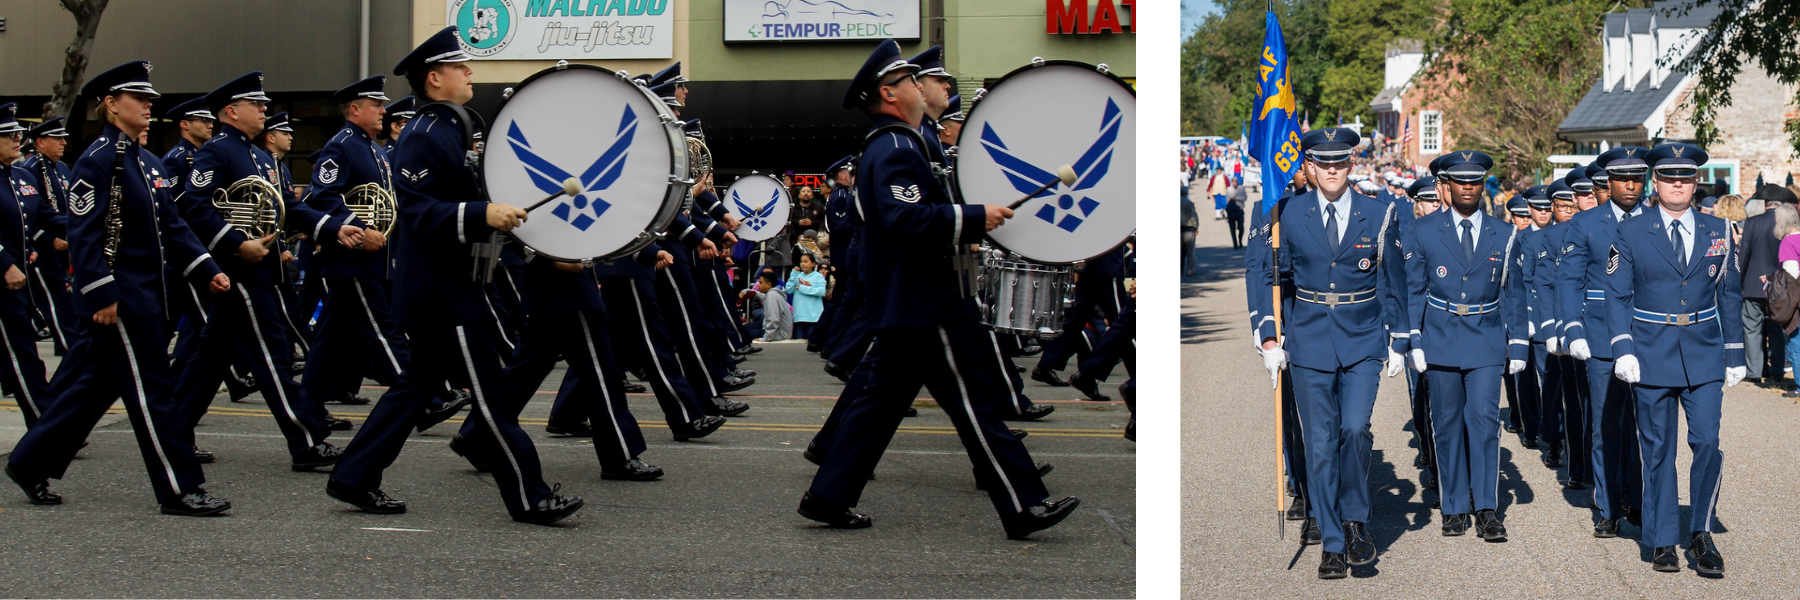 air force members marching in parade